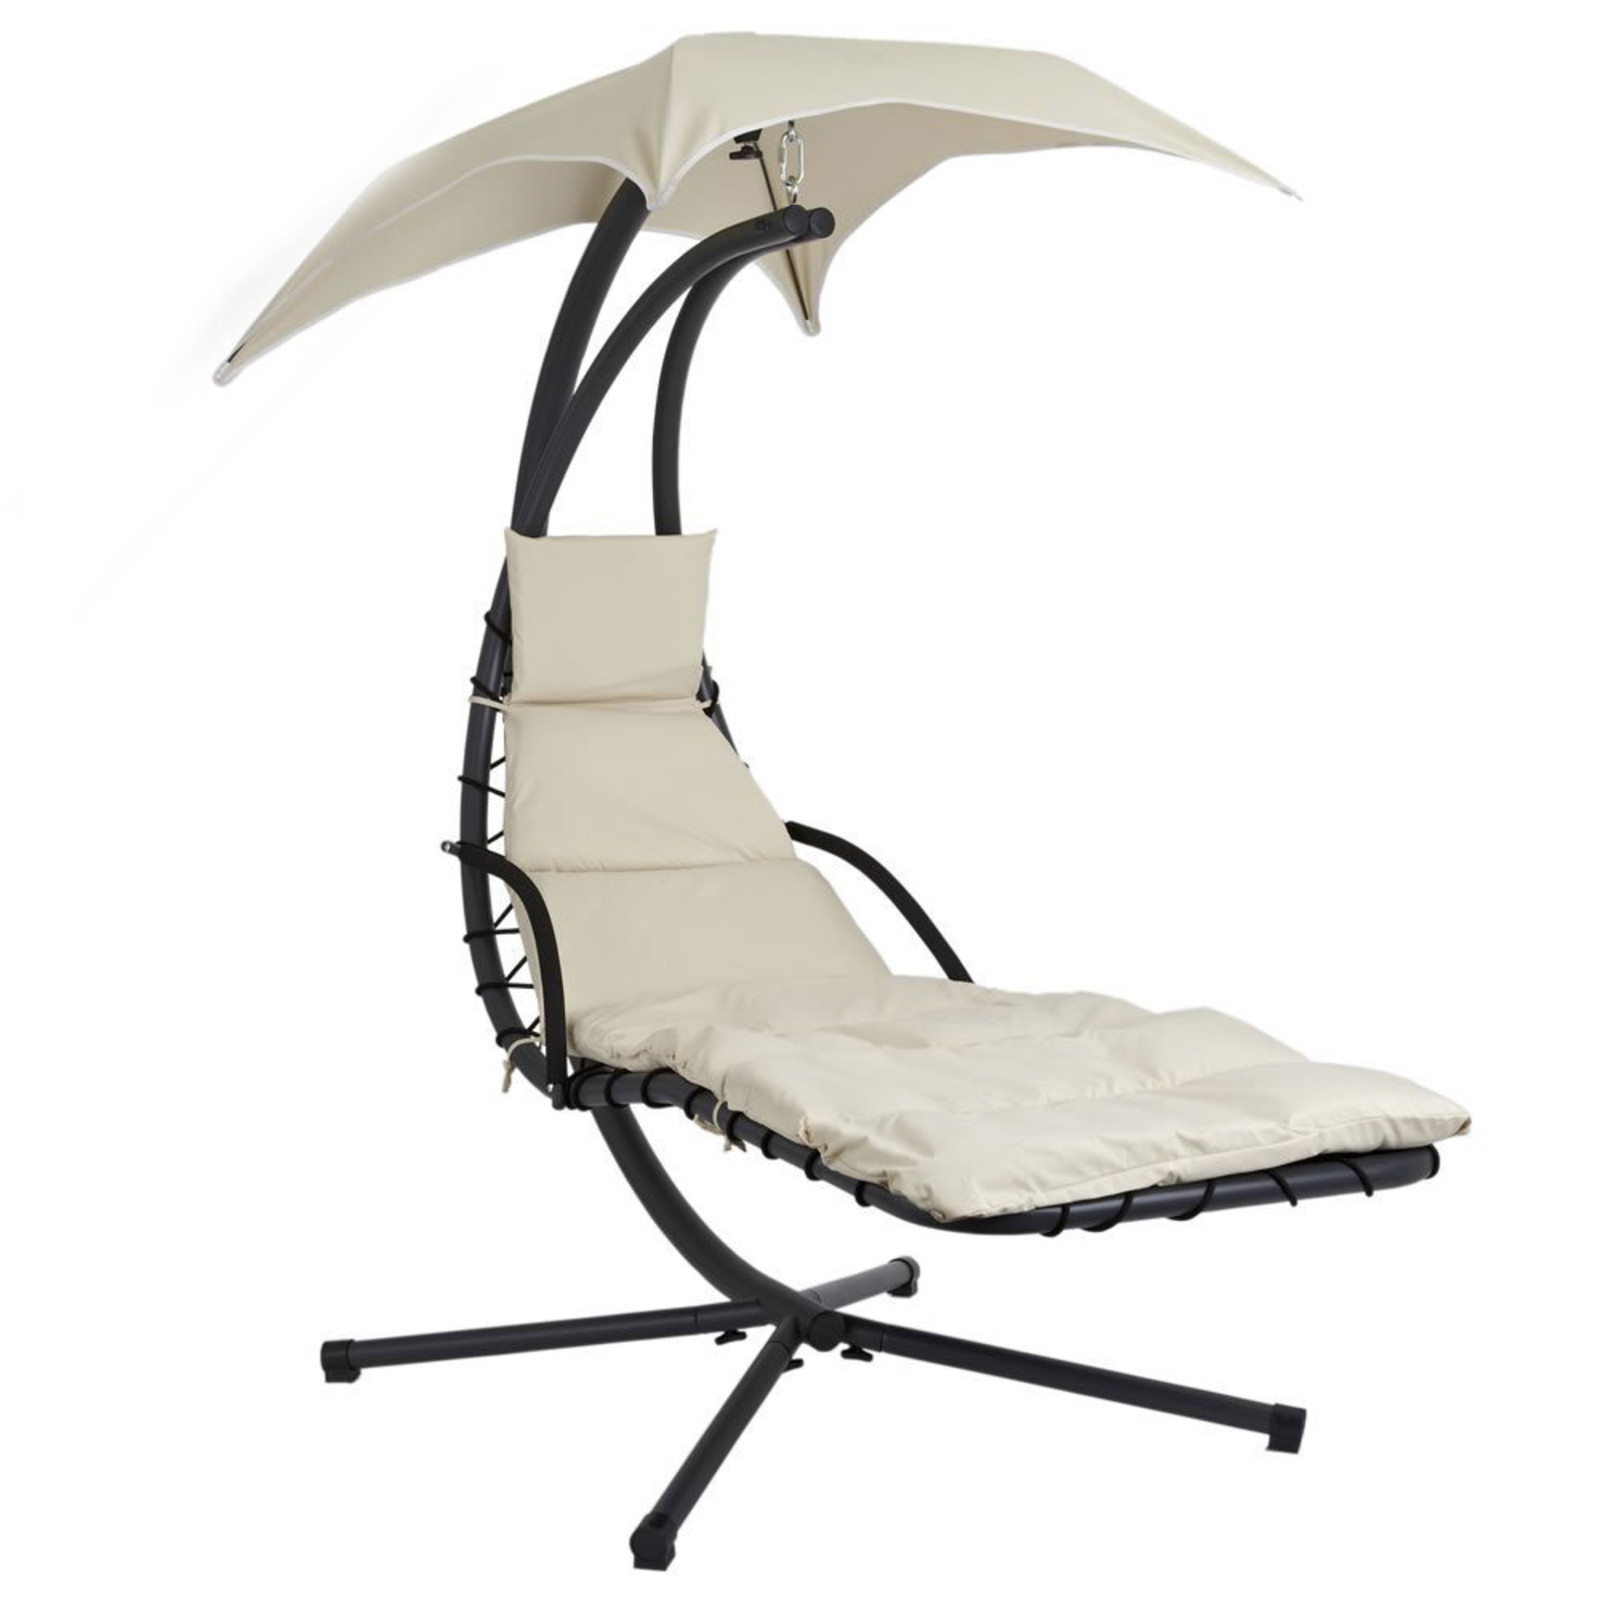 Helicopter Swing Chair Lounger with Cushion